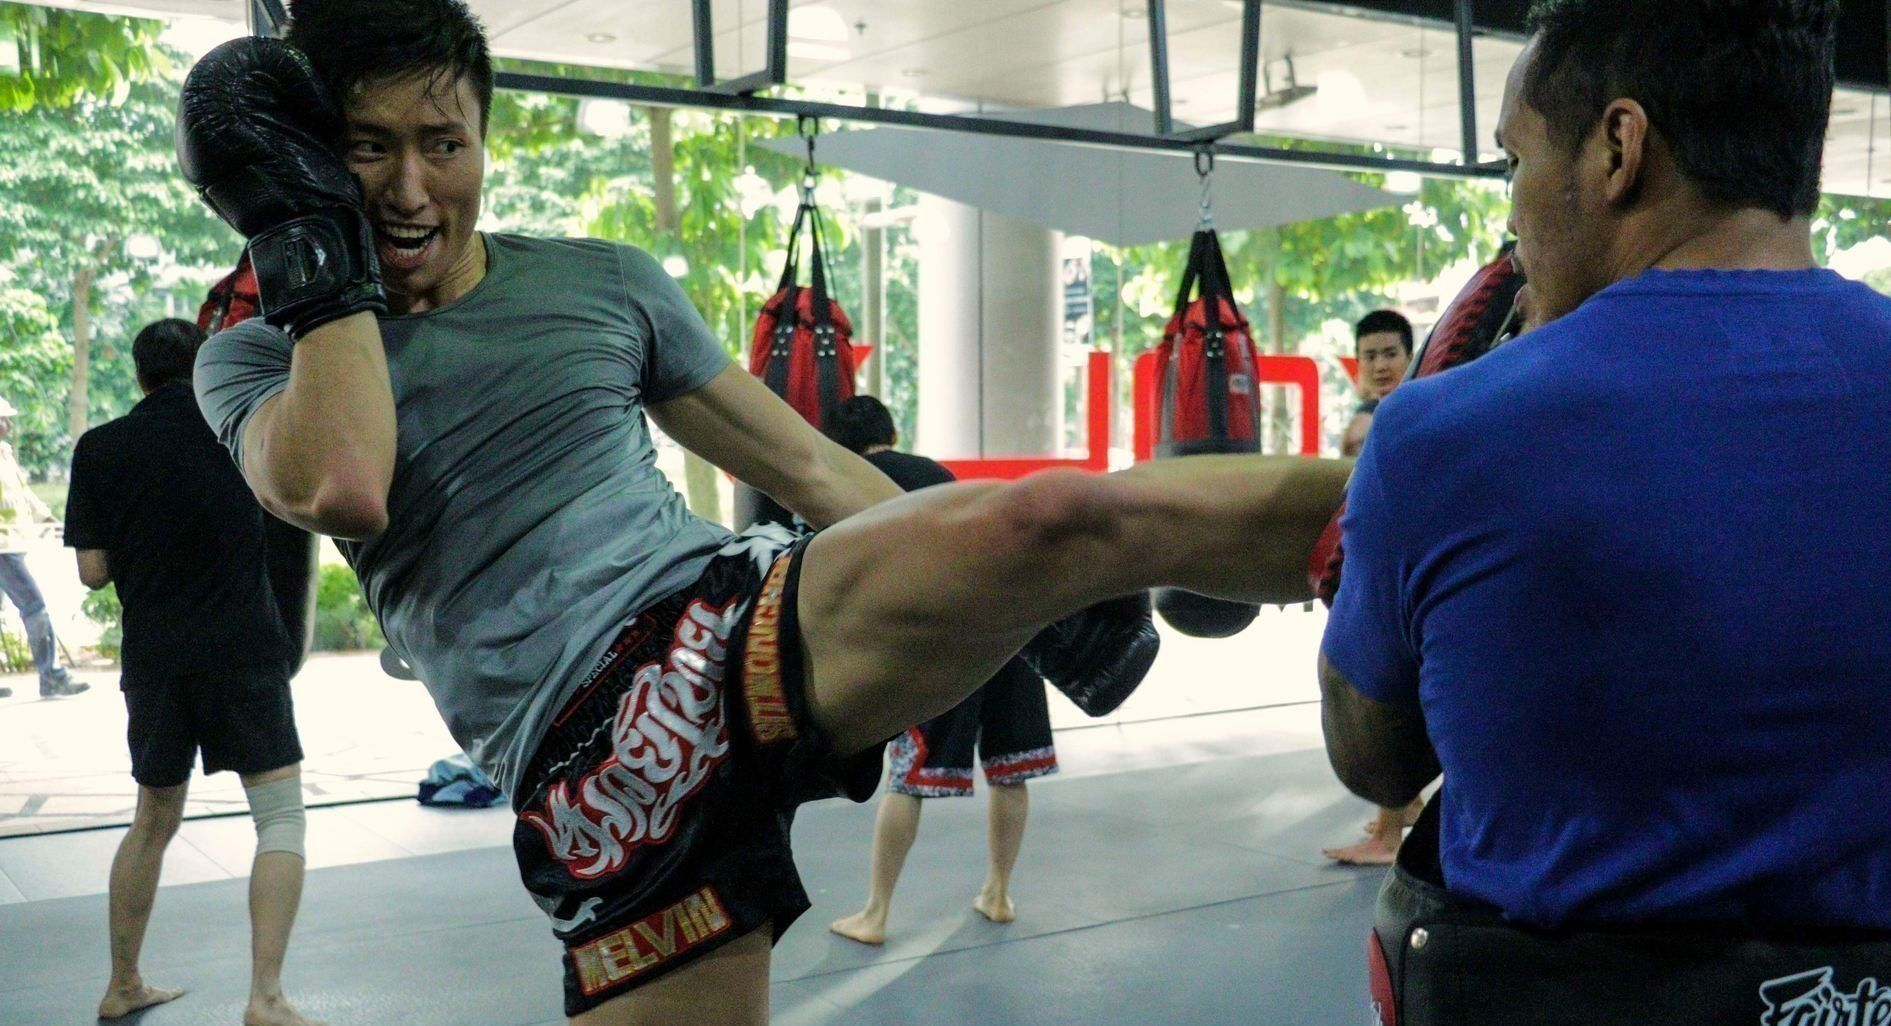 A Muay Thai student throws a kick at the pads during a class.